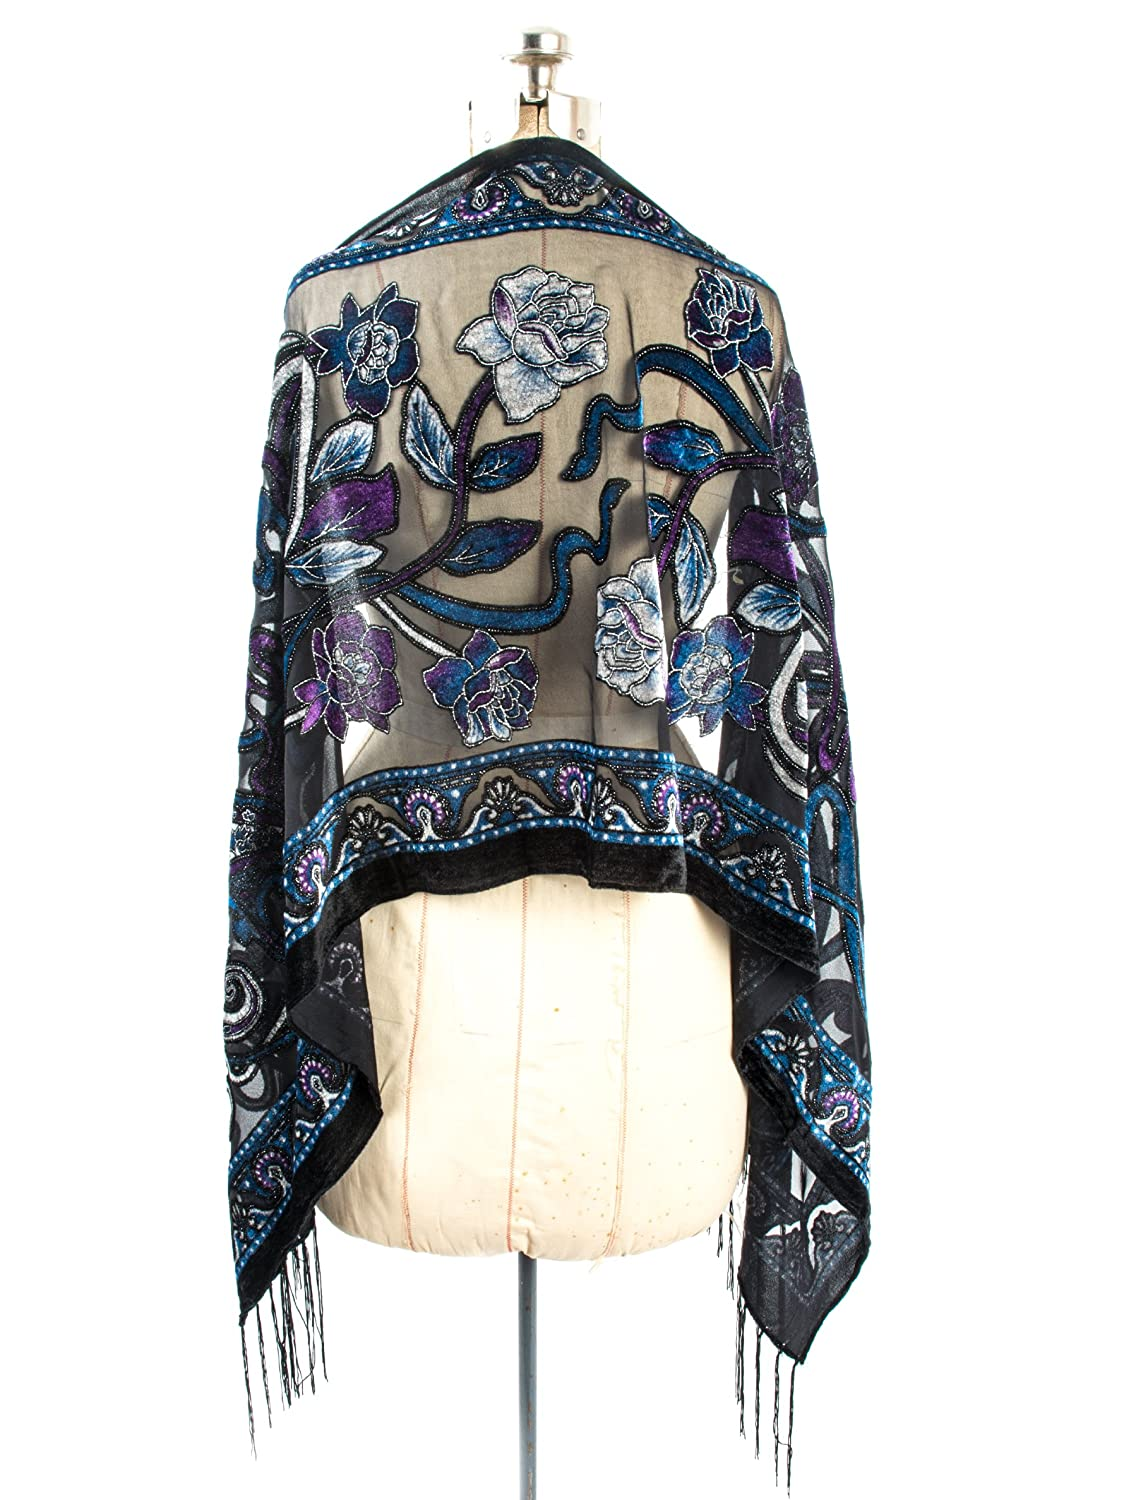 Edwardian Style Clothing Bohomonde Muriel Scarf Silk Art Nouveau Print Velvet Burnout Scarf with Fringe Ends $17.95 AT vintagedancer.com